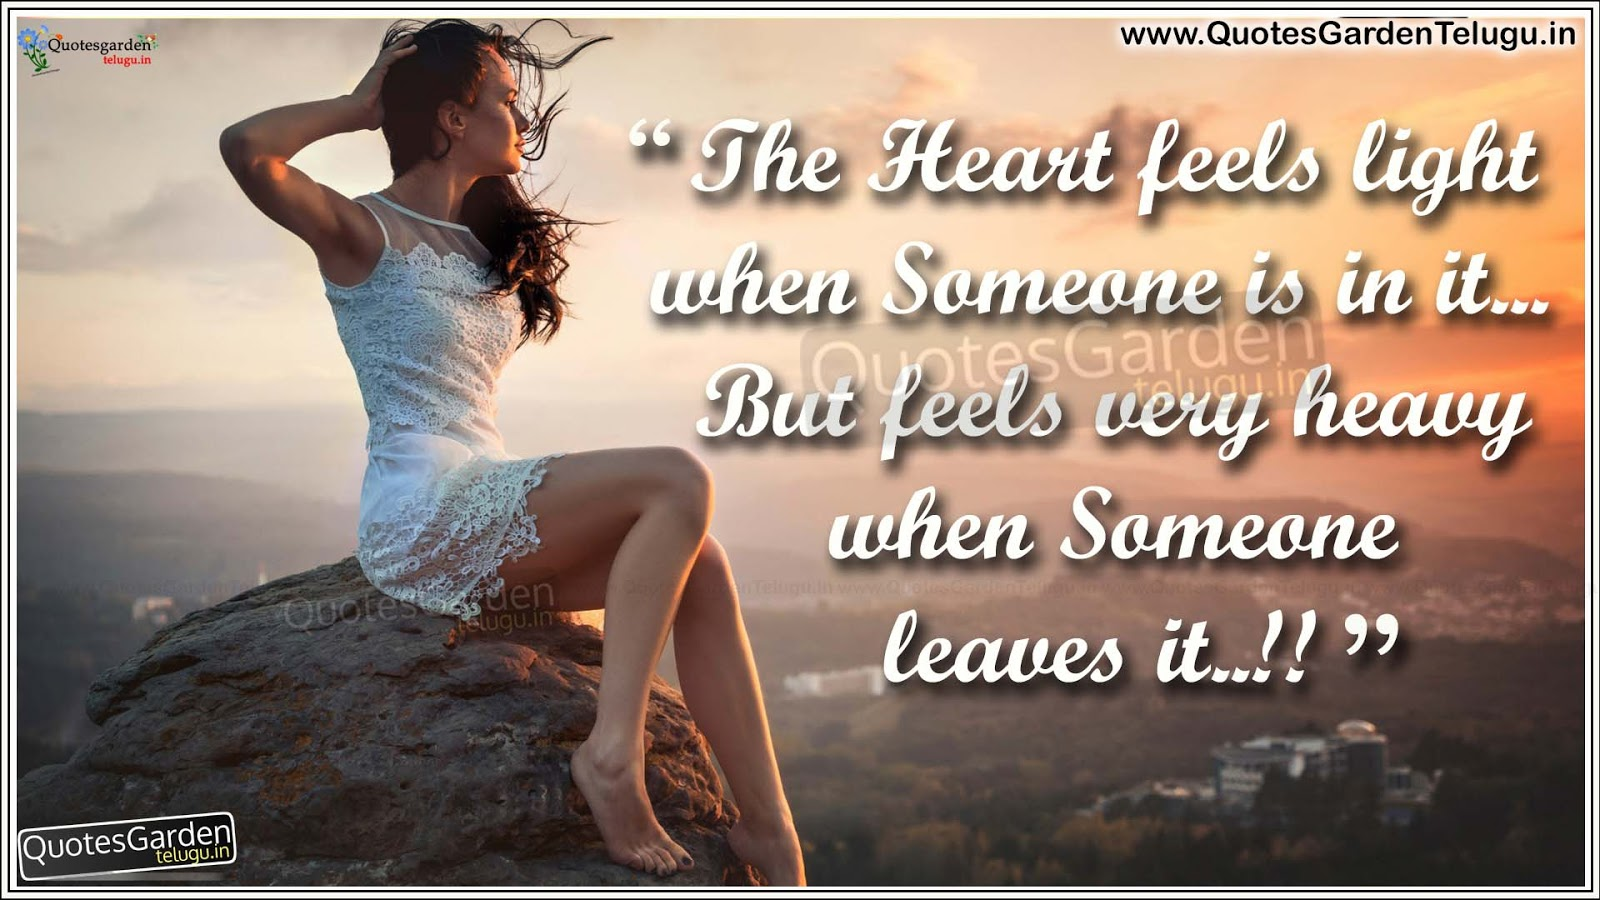 Love Wallpapers Hd With Quotes : Heart touching Love Quotes HD love wallpapers QUOTES ...